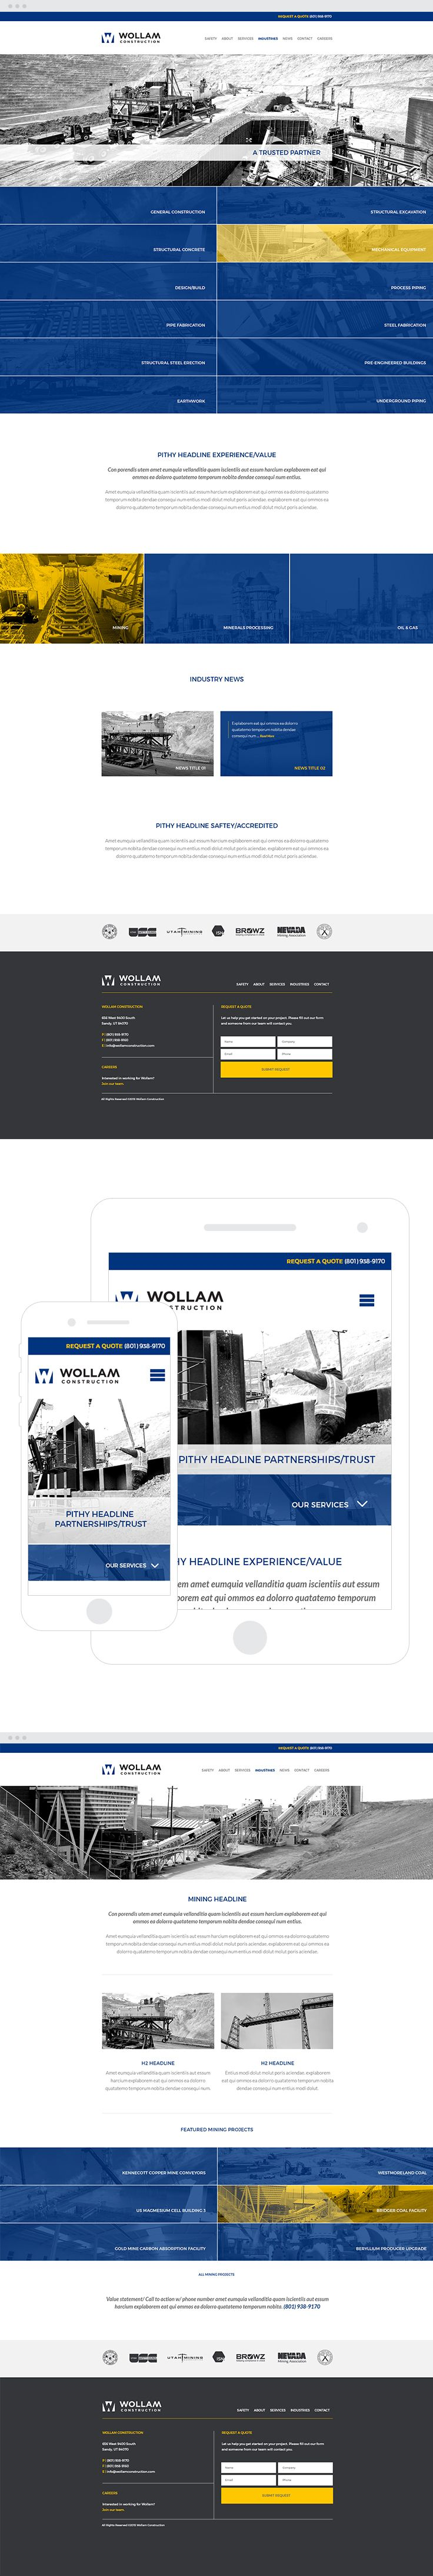 Wollam Construction Web Design & Development